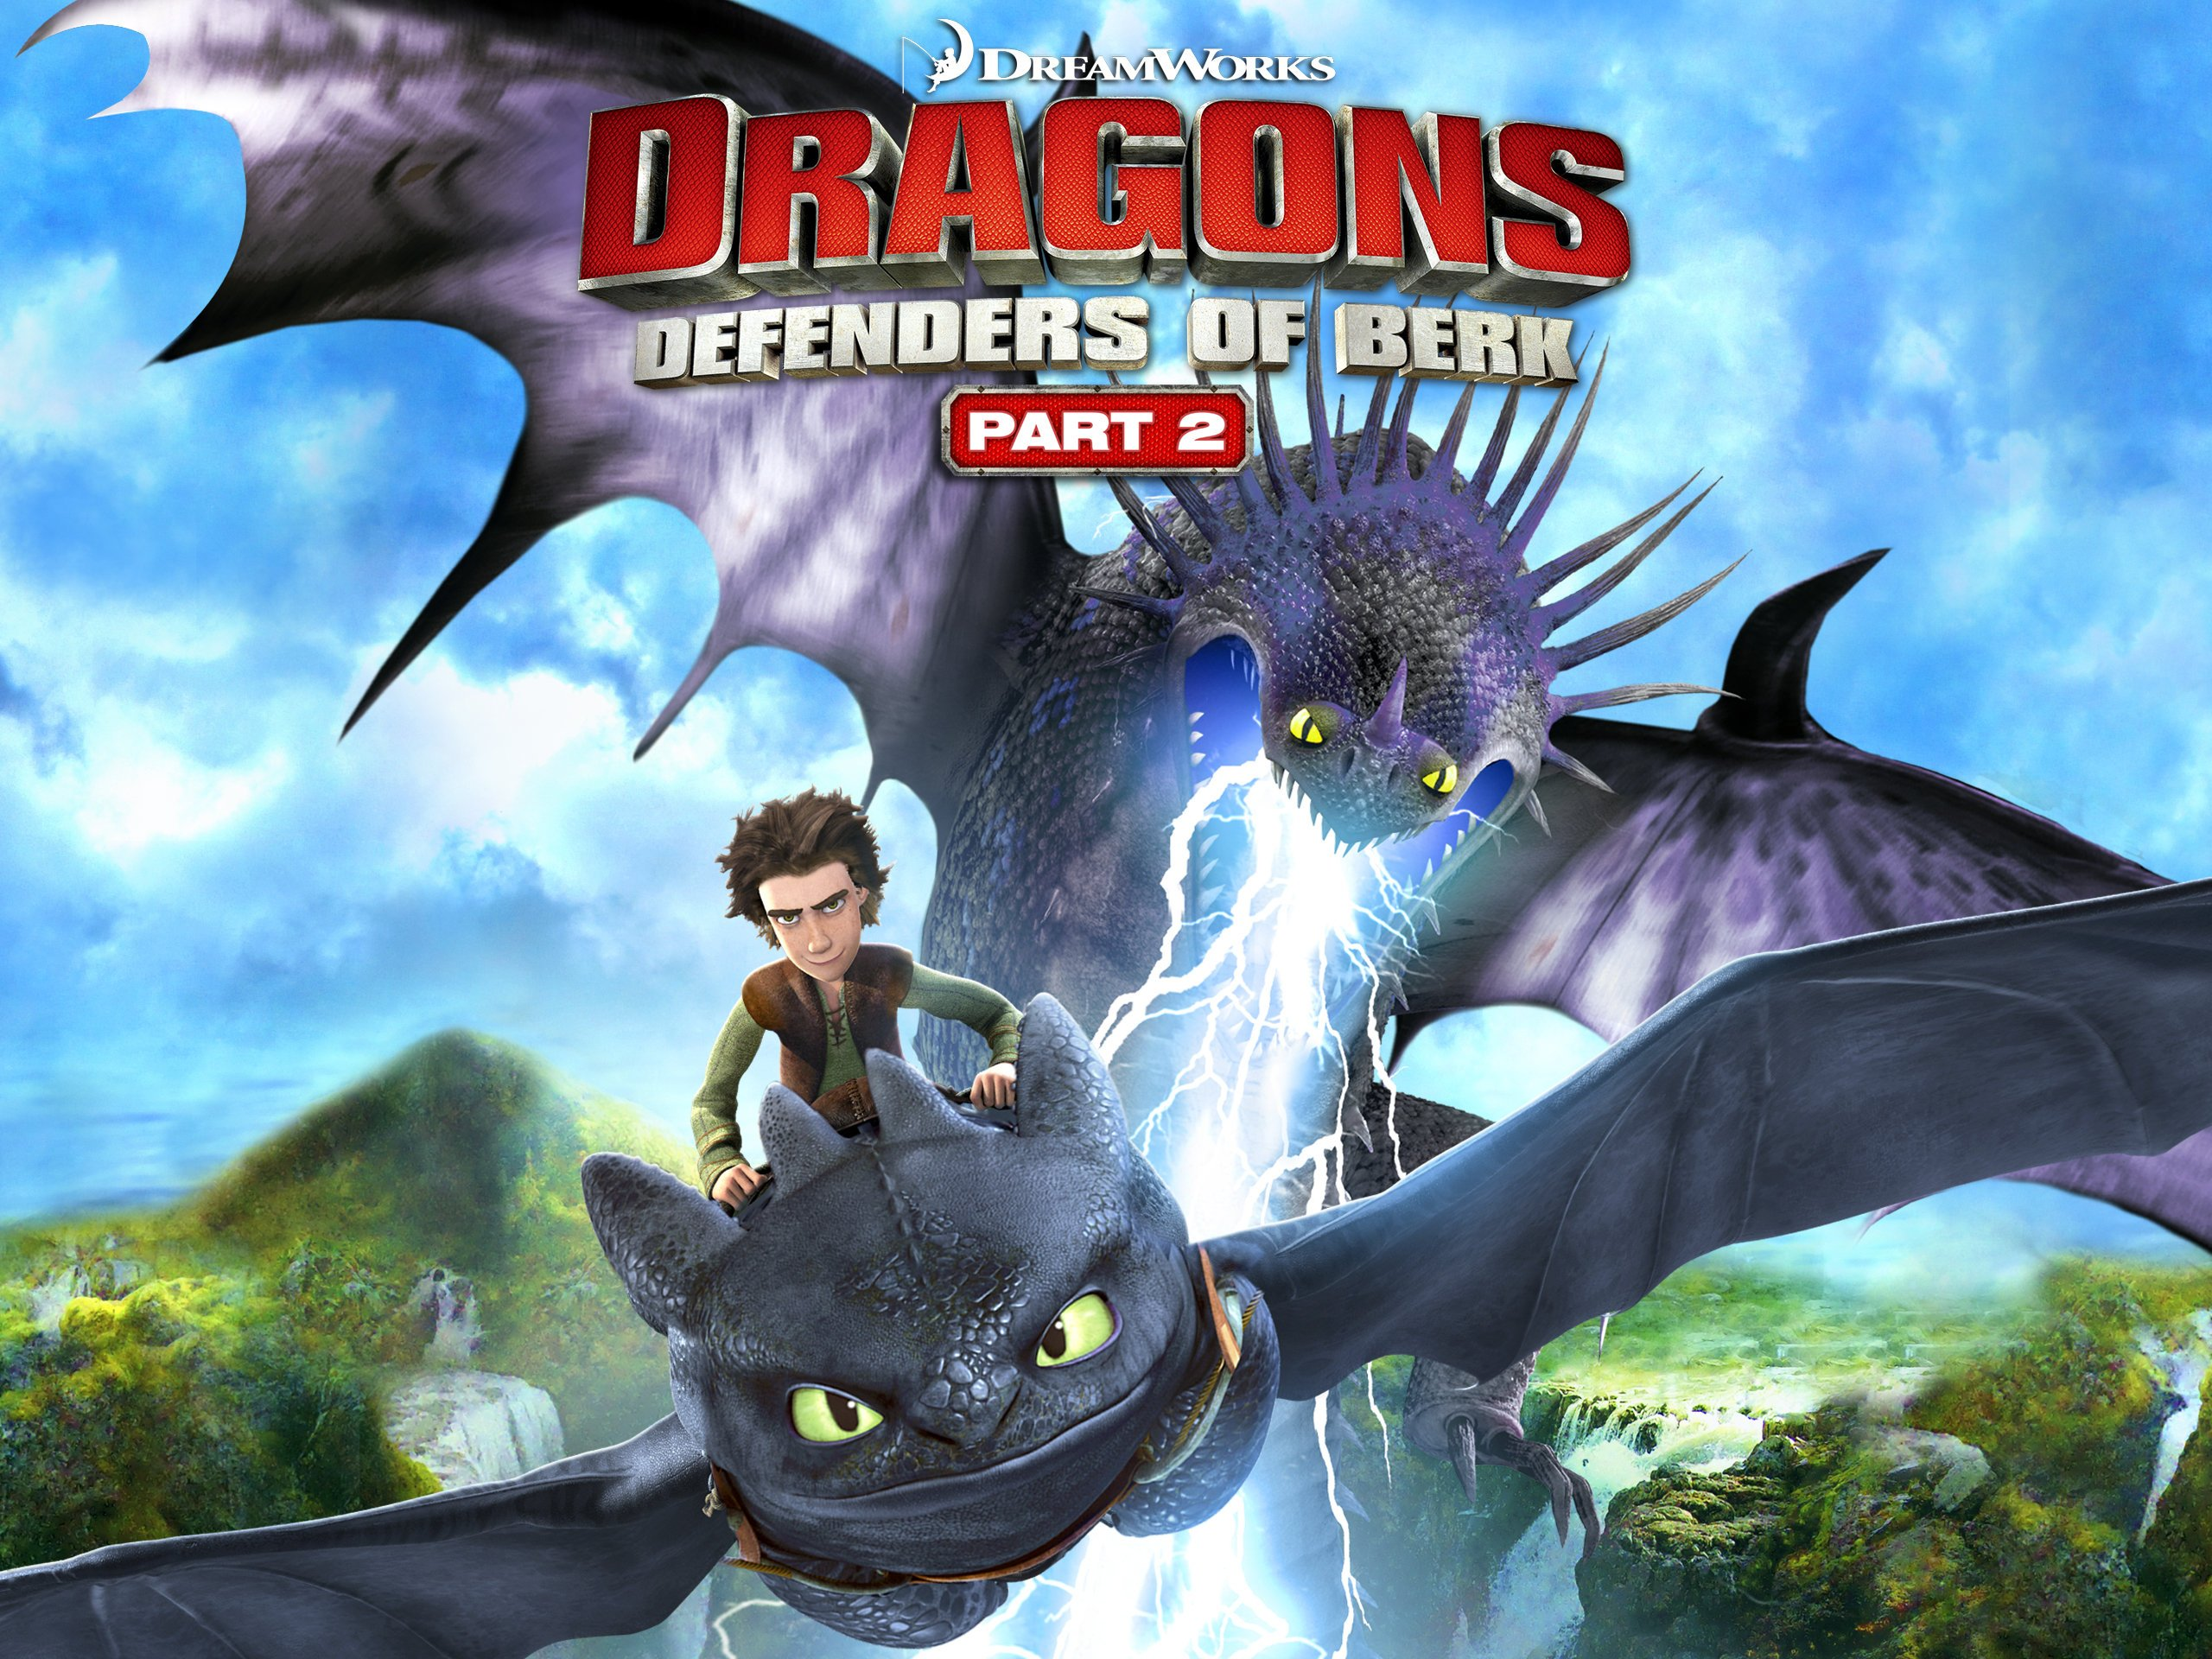 dragons defenders of berk season 3 episode 4